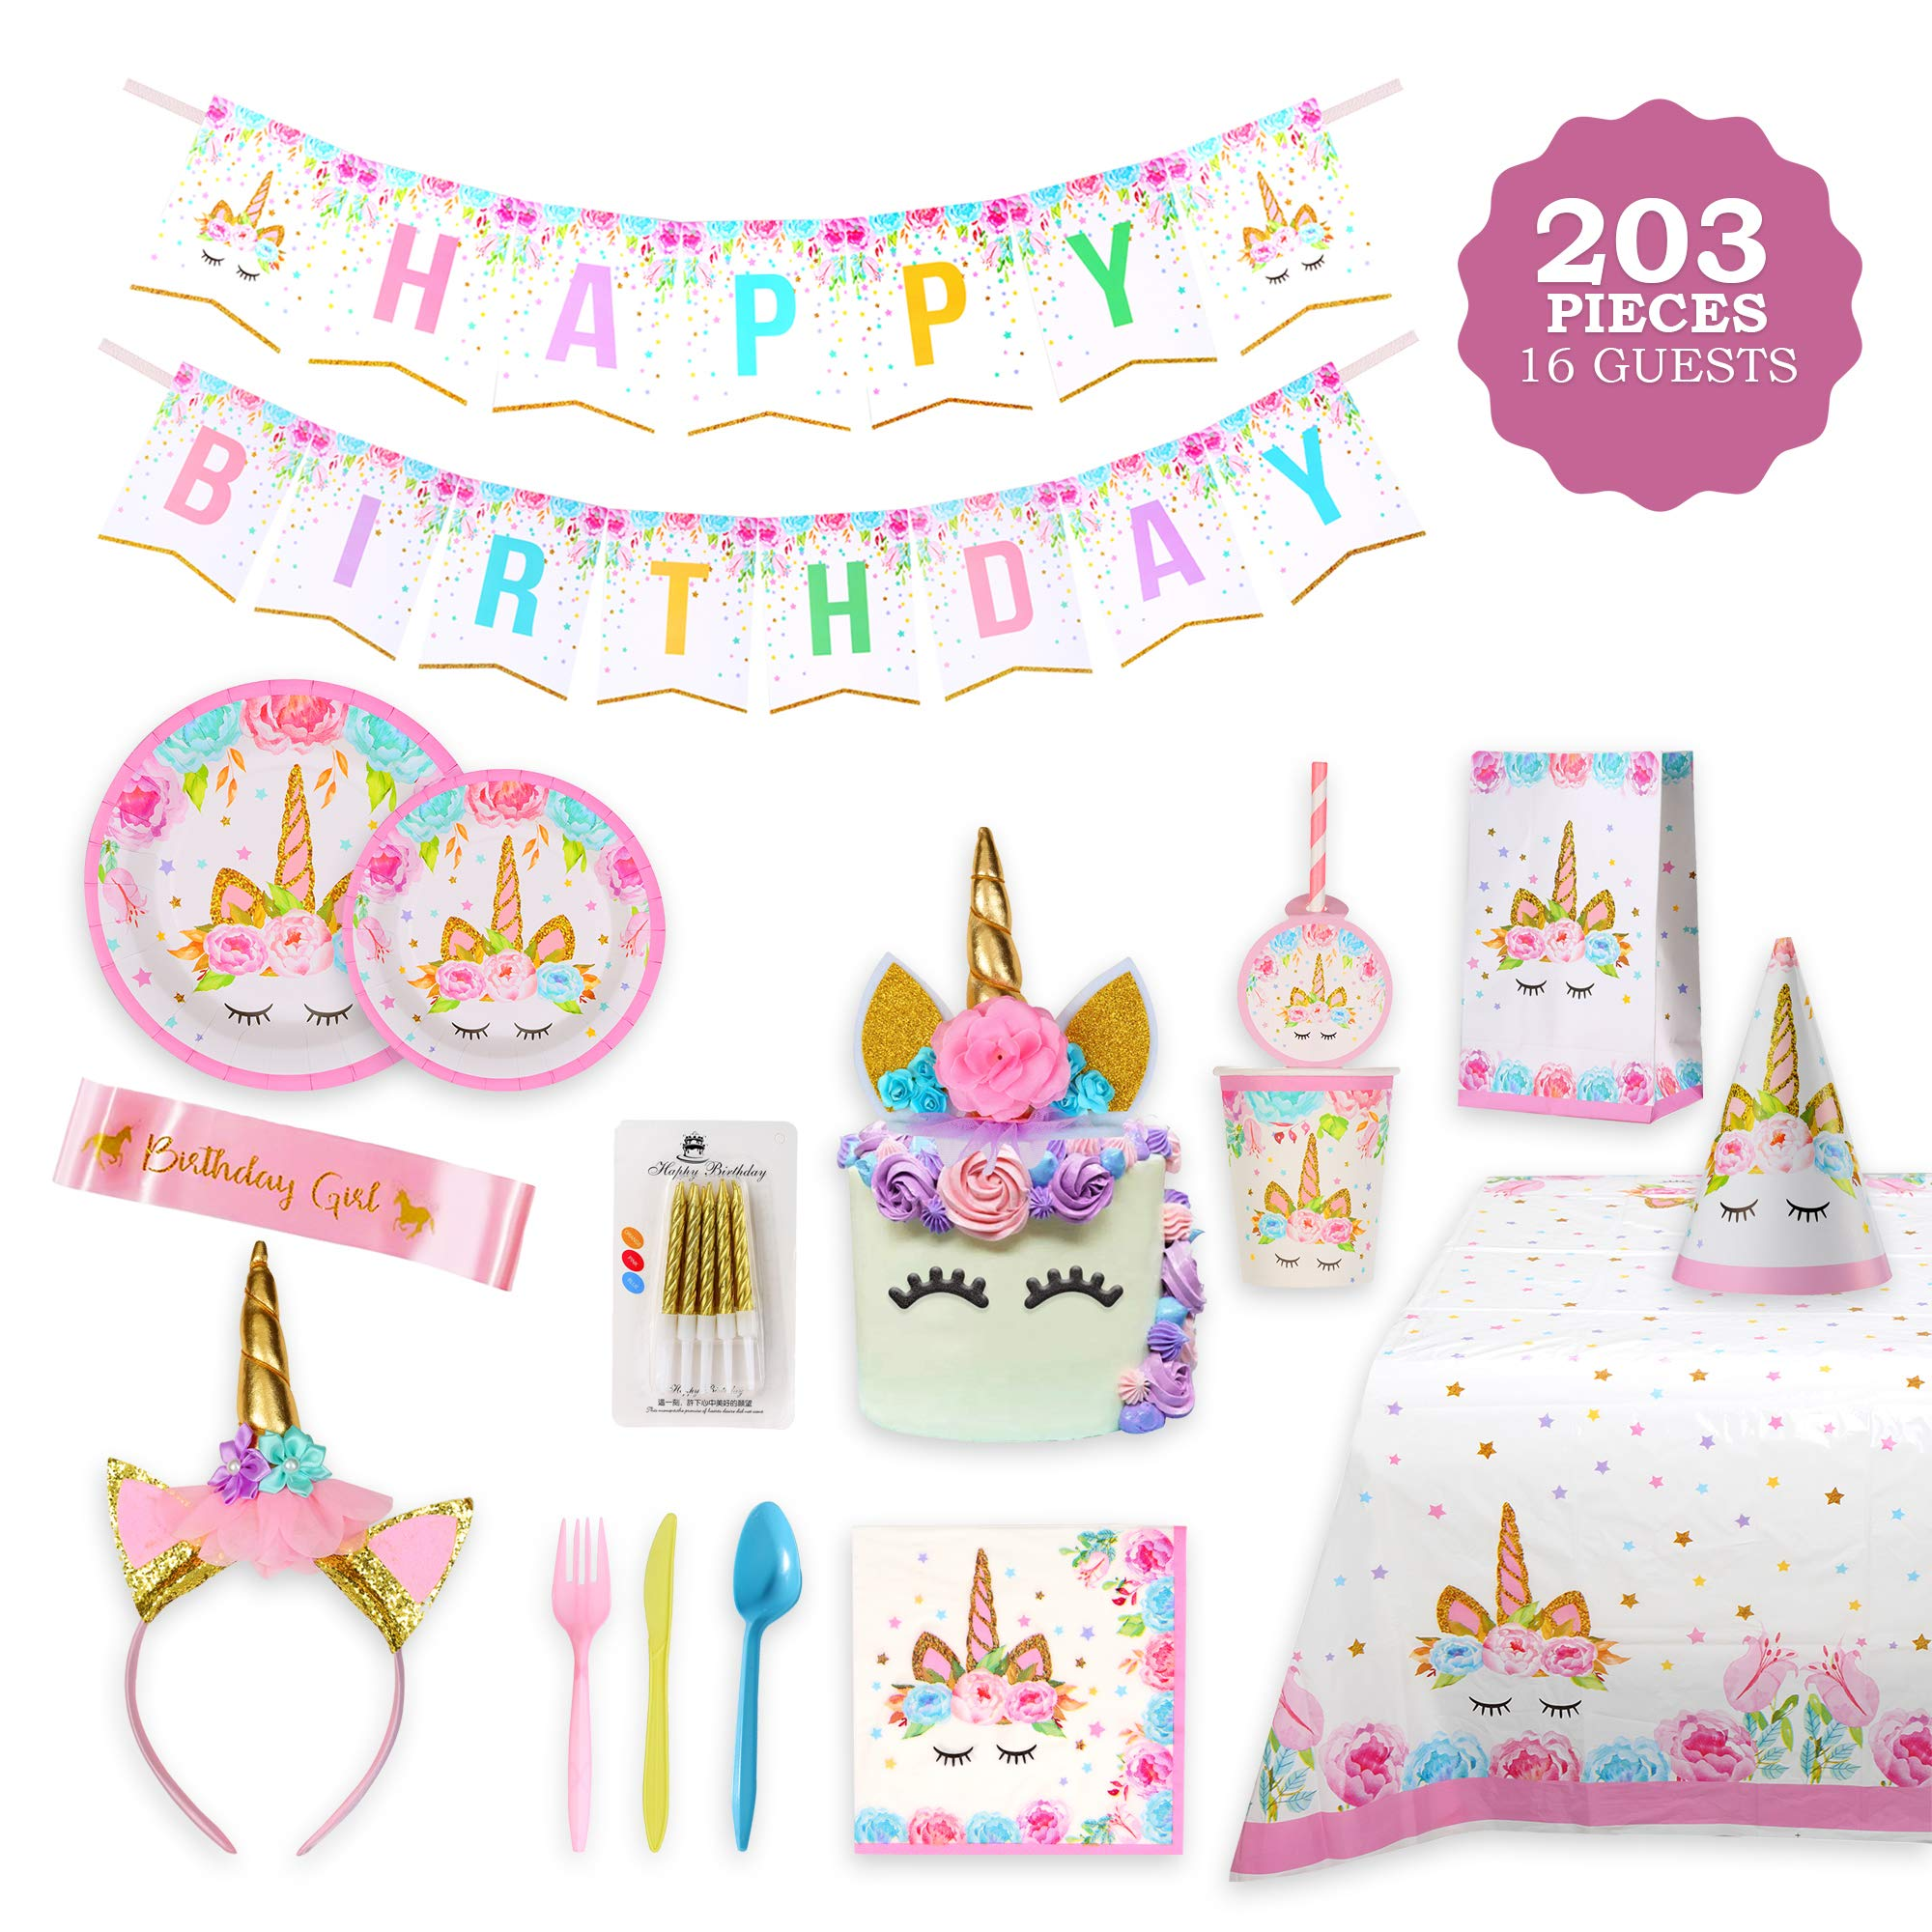 Unicorn Party Supplies Set & Tableware Kit,Serves 16 - Perfect for Girls Birthday Party Decorations- Includes Plates,Napkins,Cups,Starws,Utensils & 8 BONUS GIFTS by BLUERITE